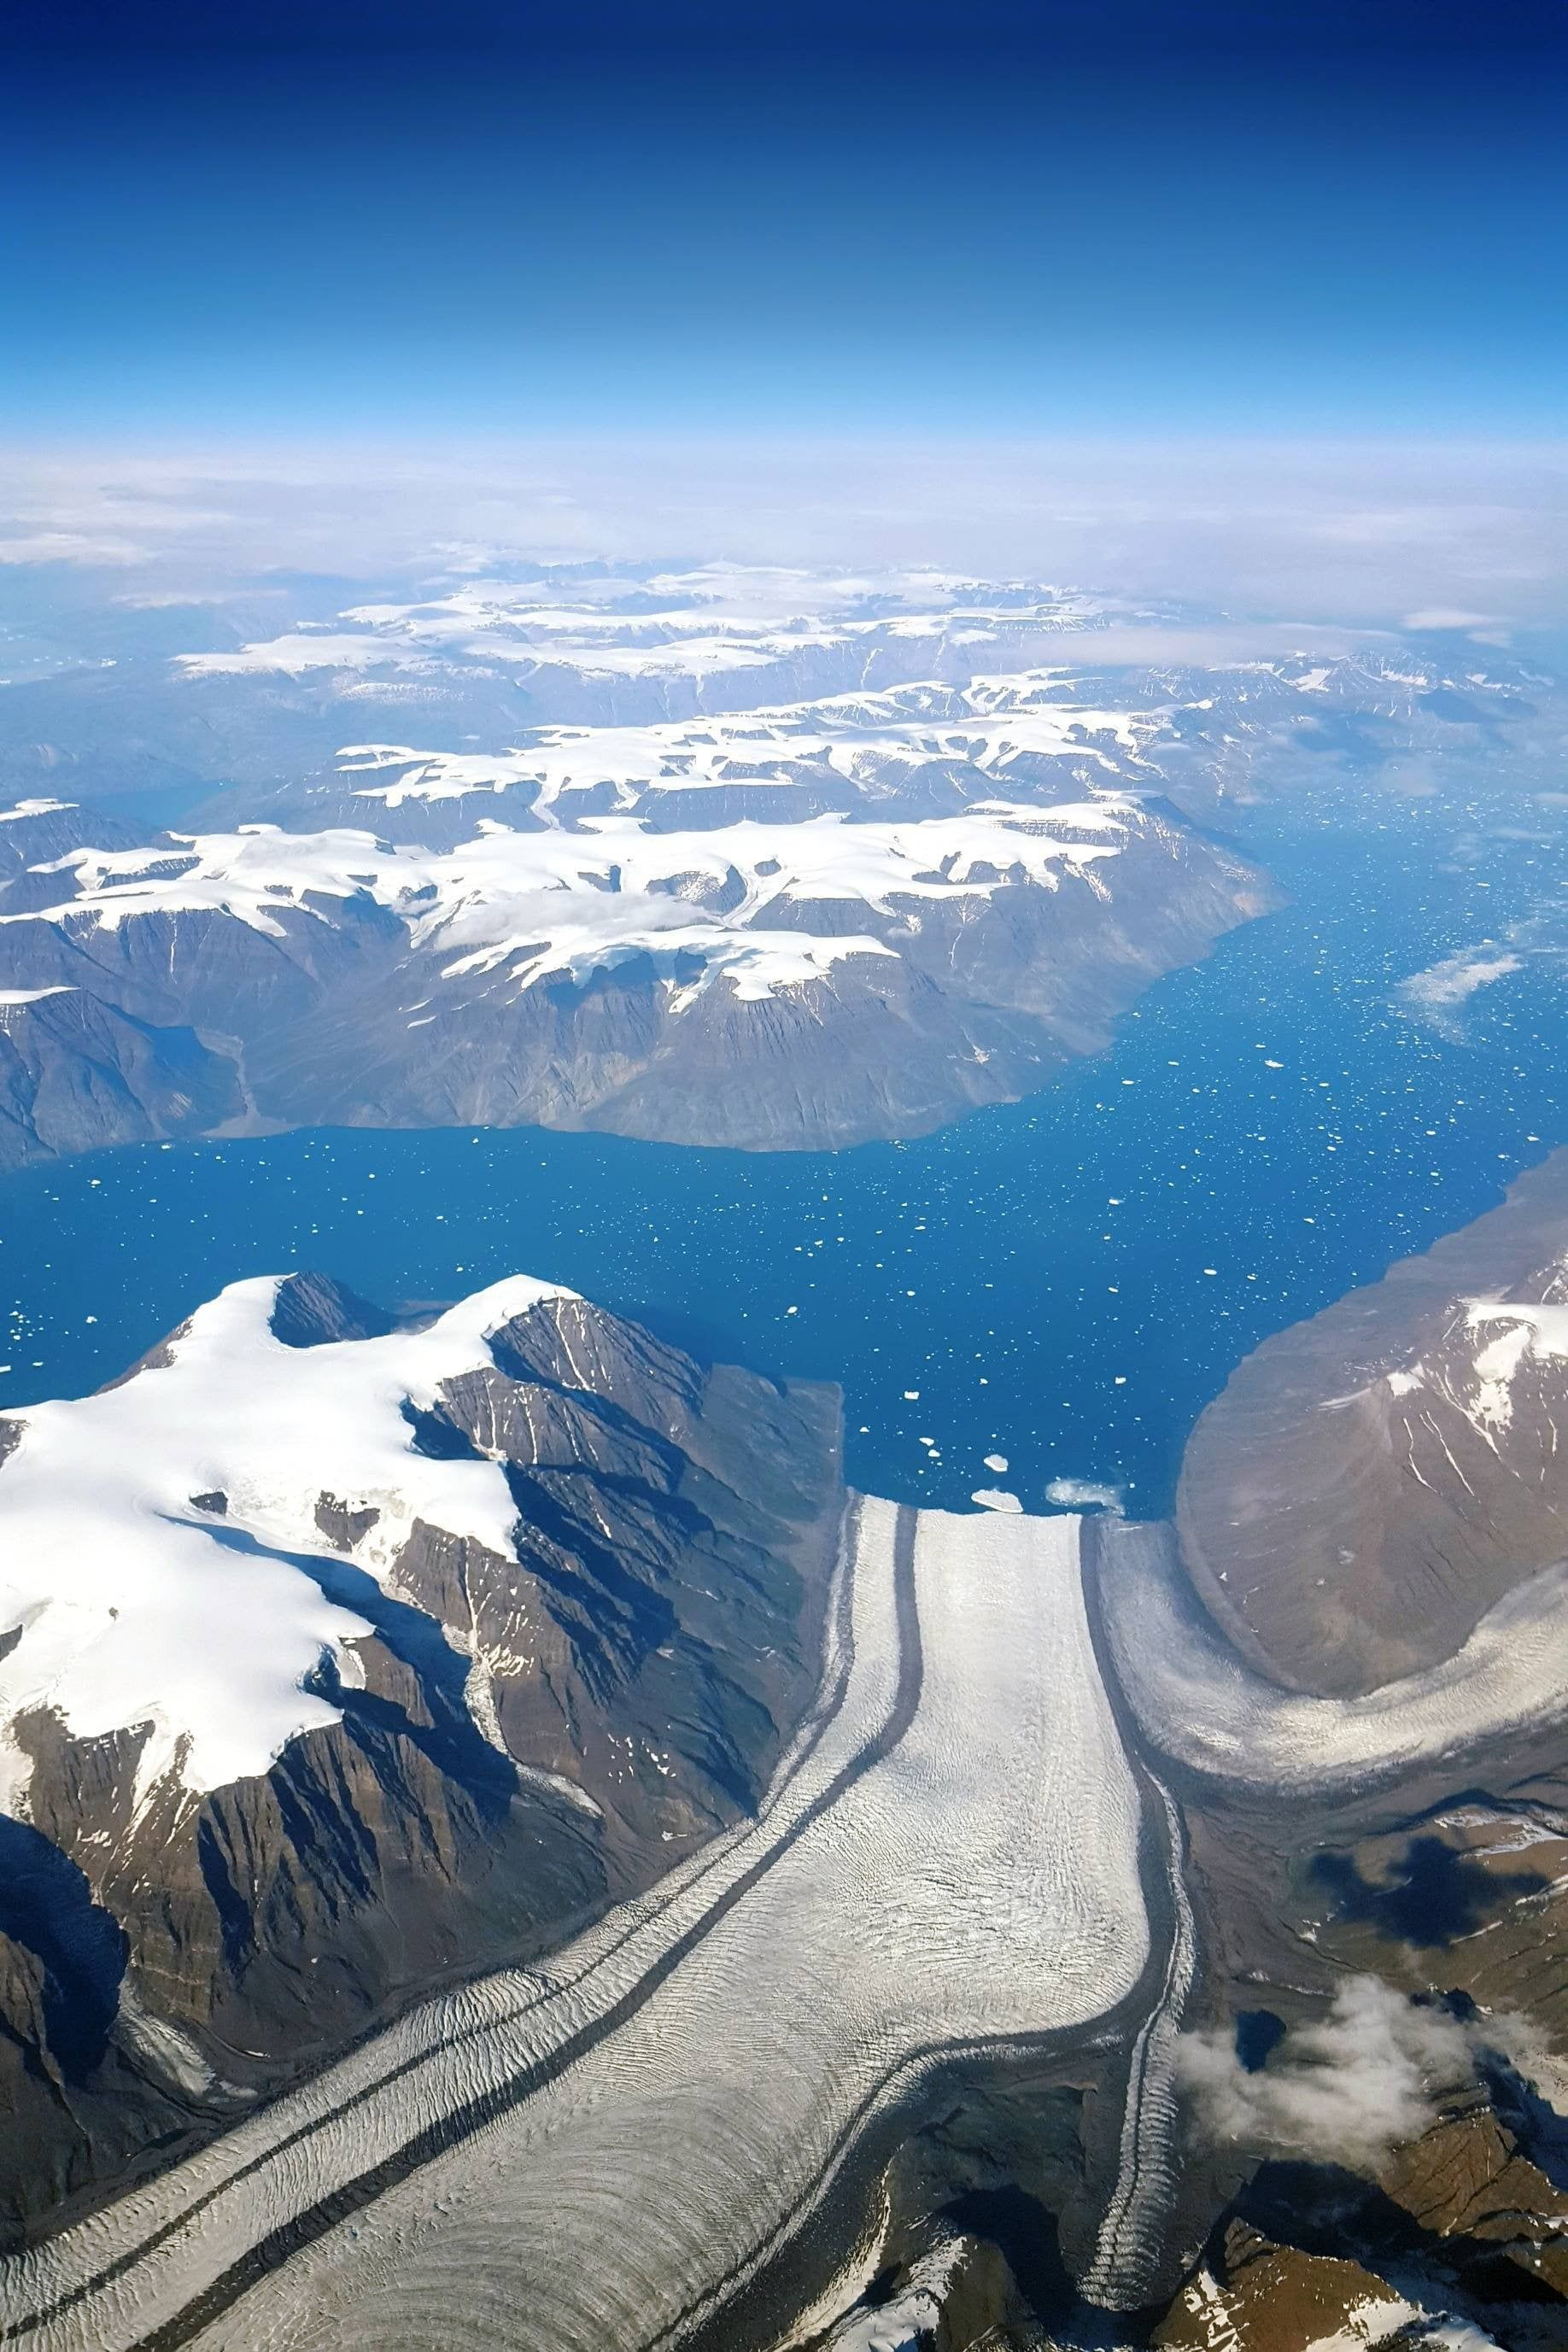 Flying over the massive glaciers of Greenland #nature #teesylvania #photos #amazingworld #world #amazingphotography #naturephotography #photography #incrediblephotos Check out teesylvania.com to find out how you can support the forests with style!